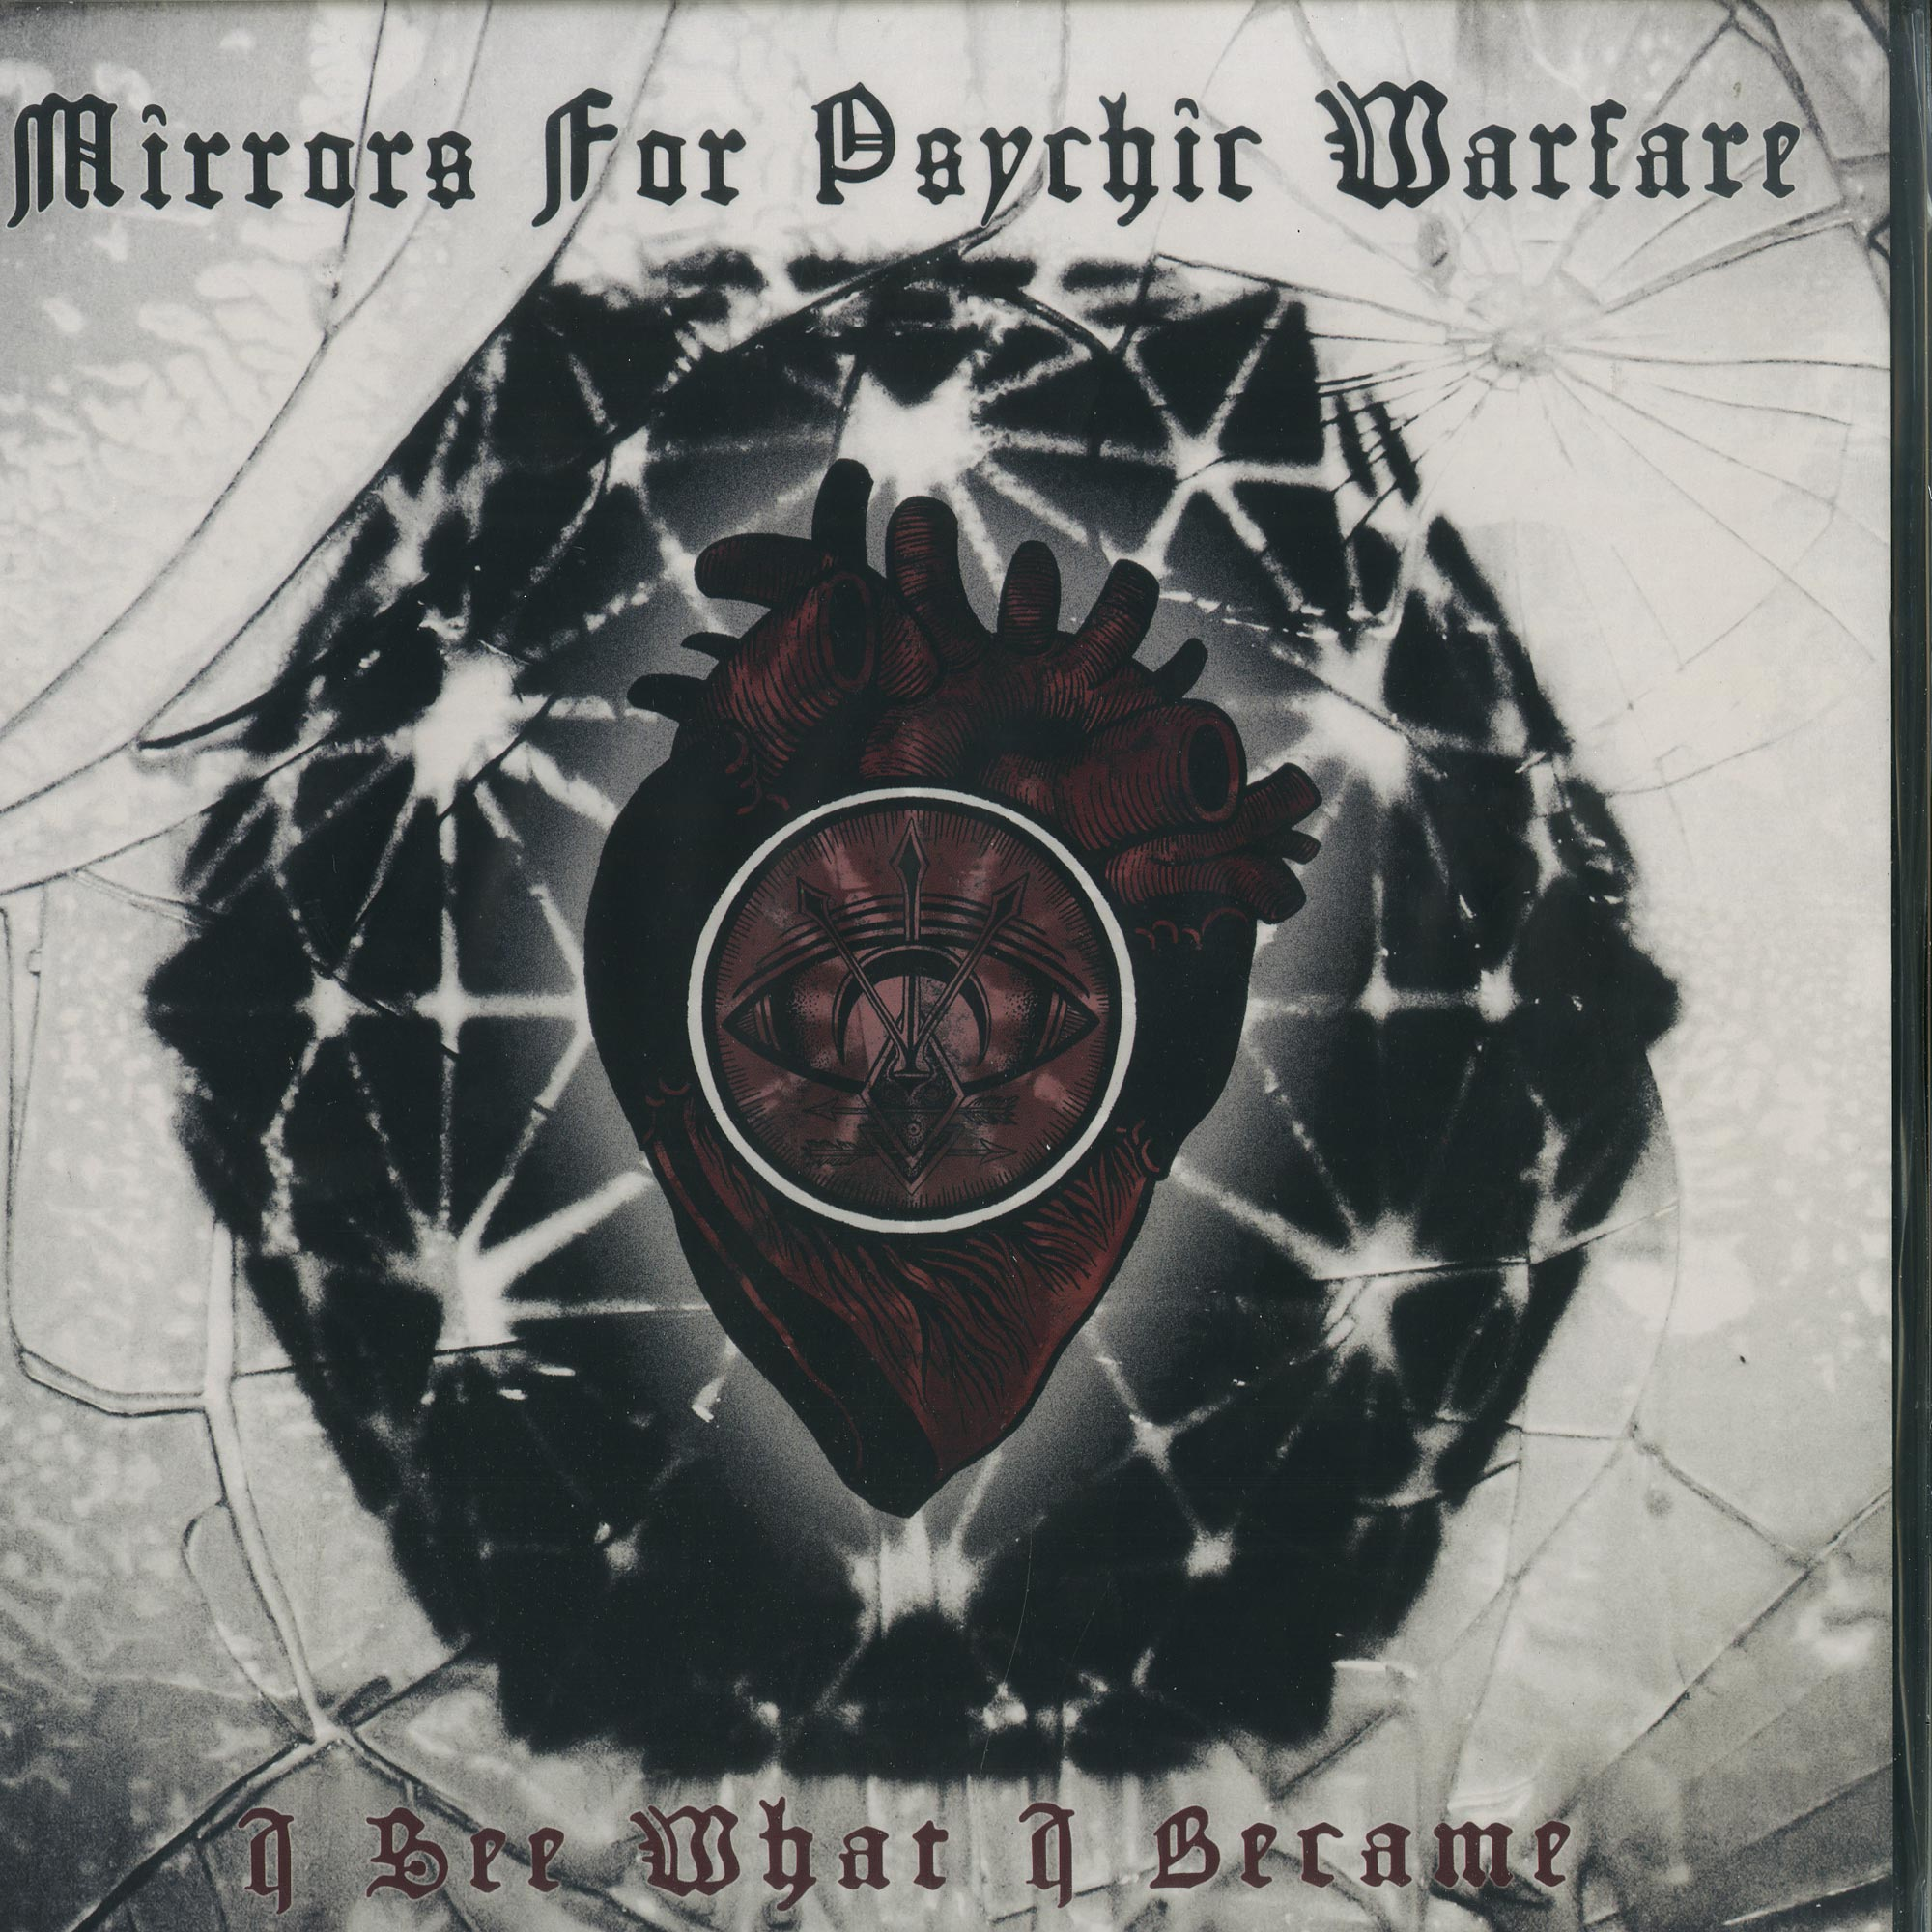 Mirrors For Psychic Warfare - I SEE WHAT I BECAME